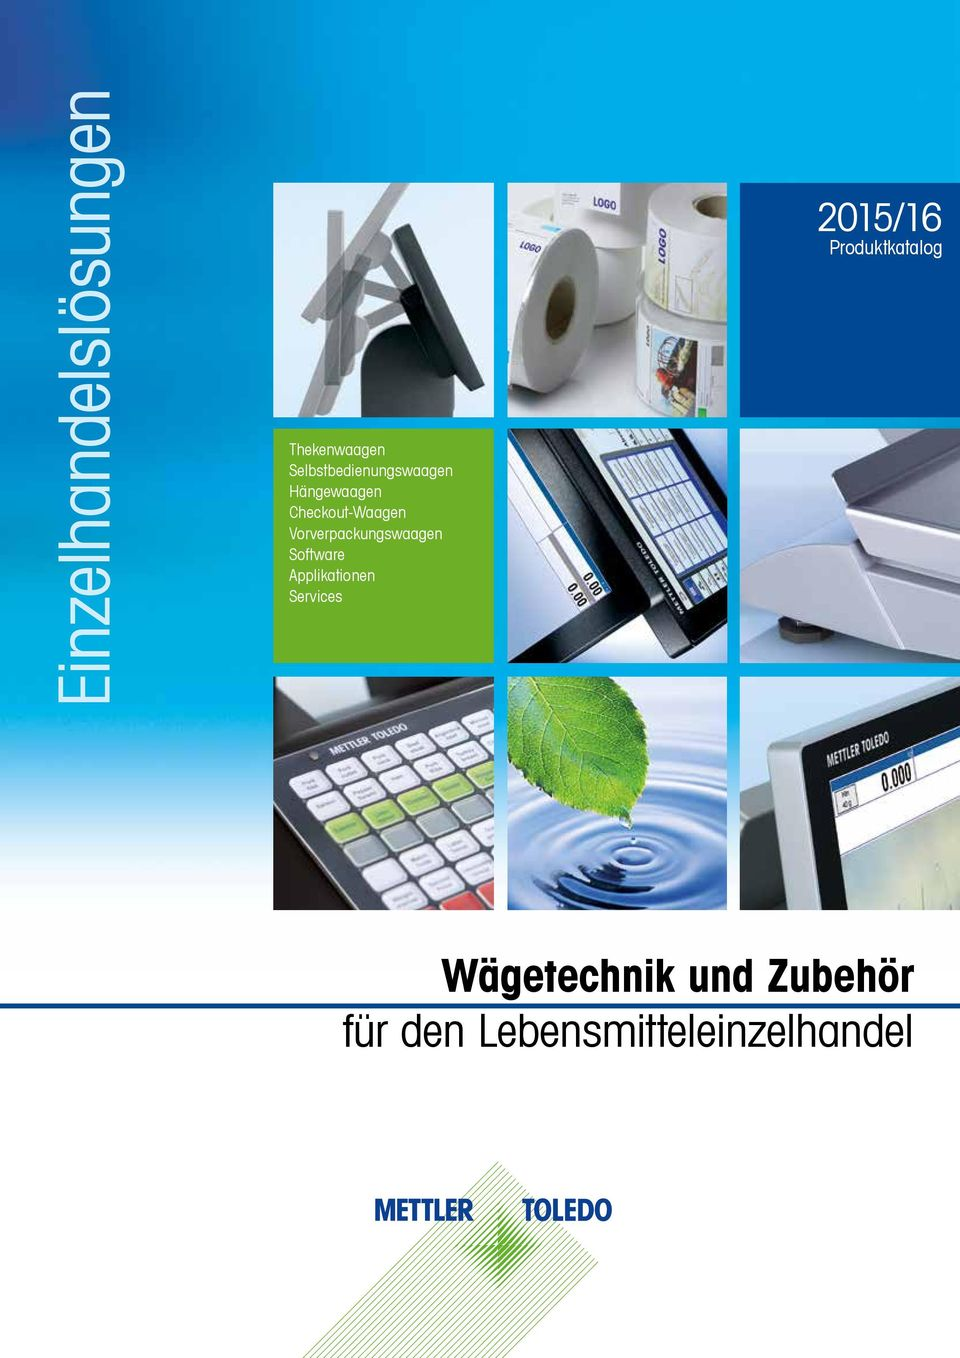 Vorverpackungswaagen Software Applikationen Services